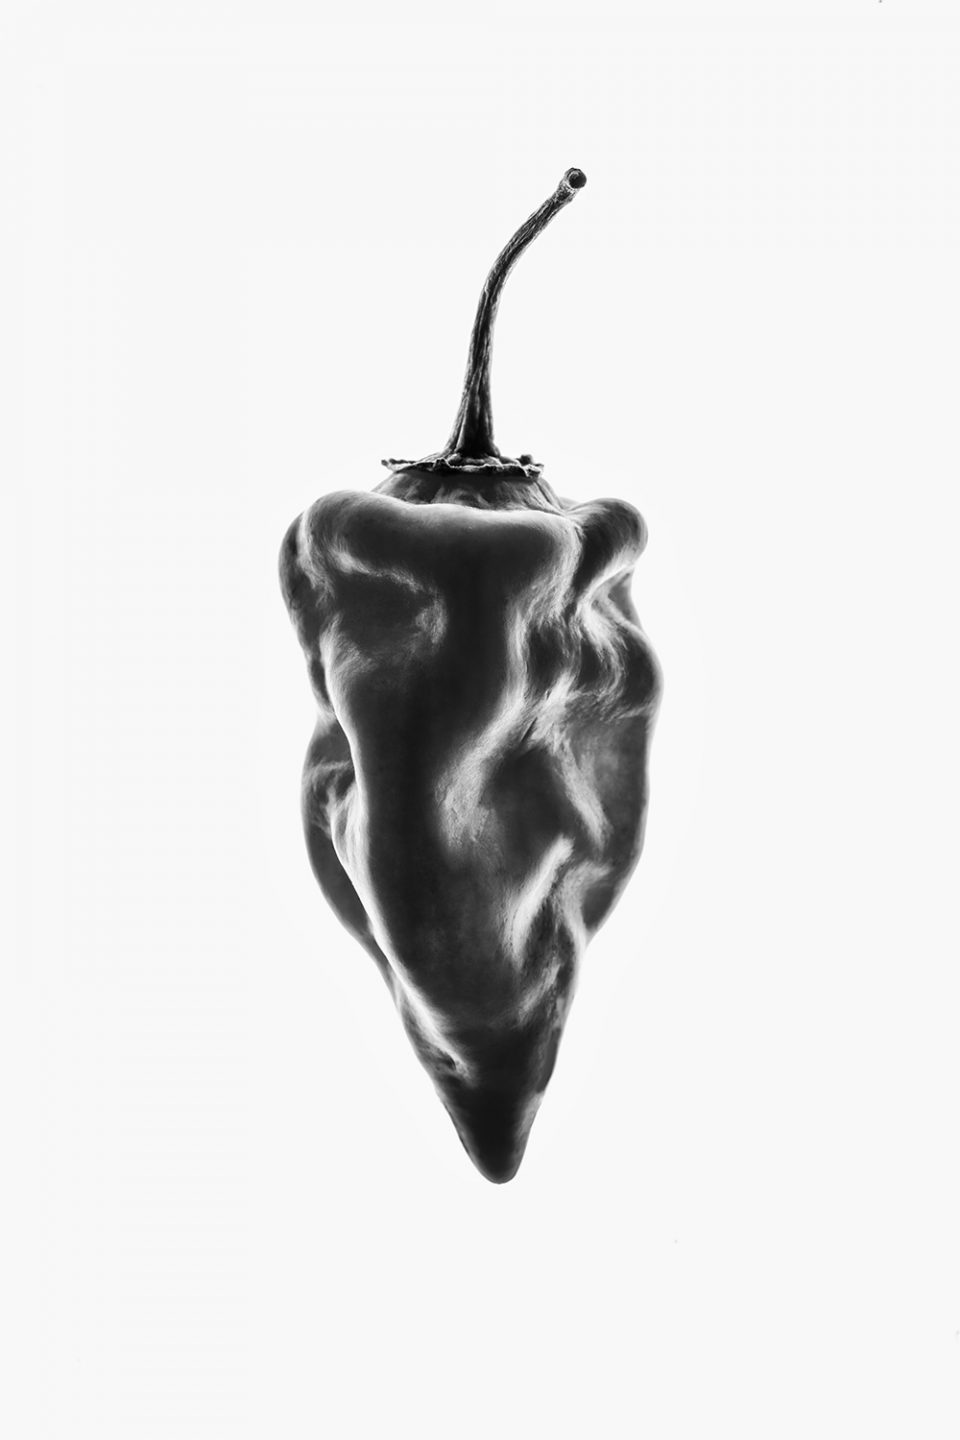 Chili Pepper Illuminated, Black and White Photograph by Keith Dotson.